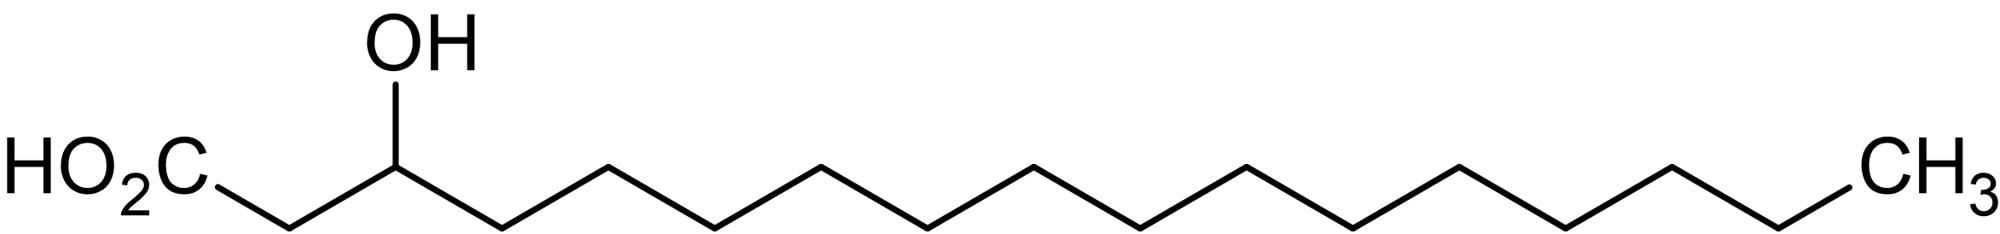 Chemical Structure - 3-Hydroxyheptadecanoic acid, 3-Hydroxy C17:0 fatty acid (ab144038)